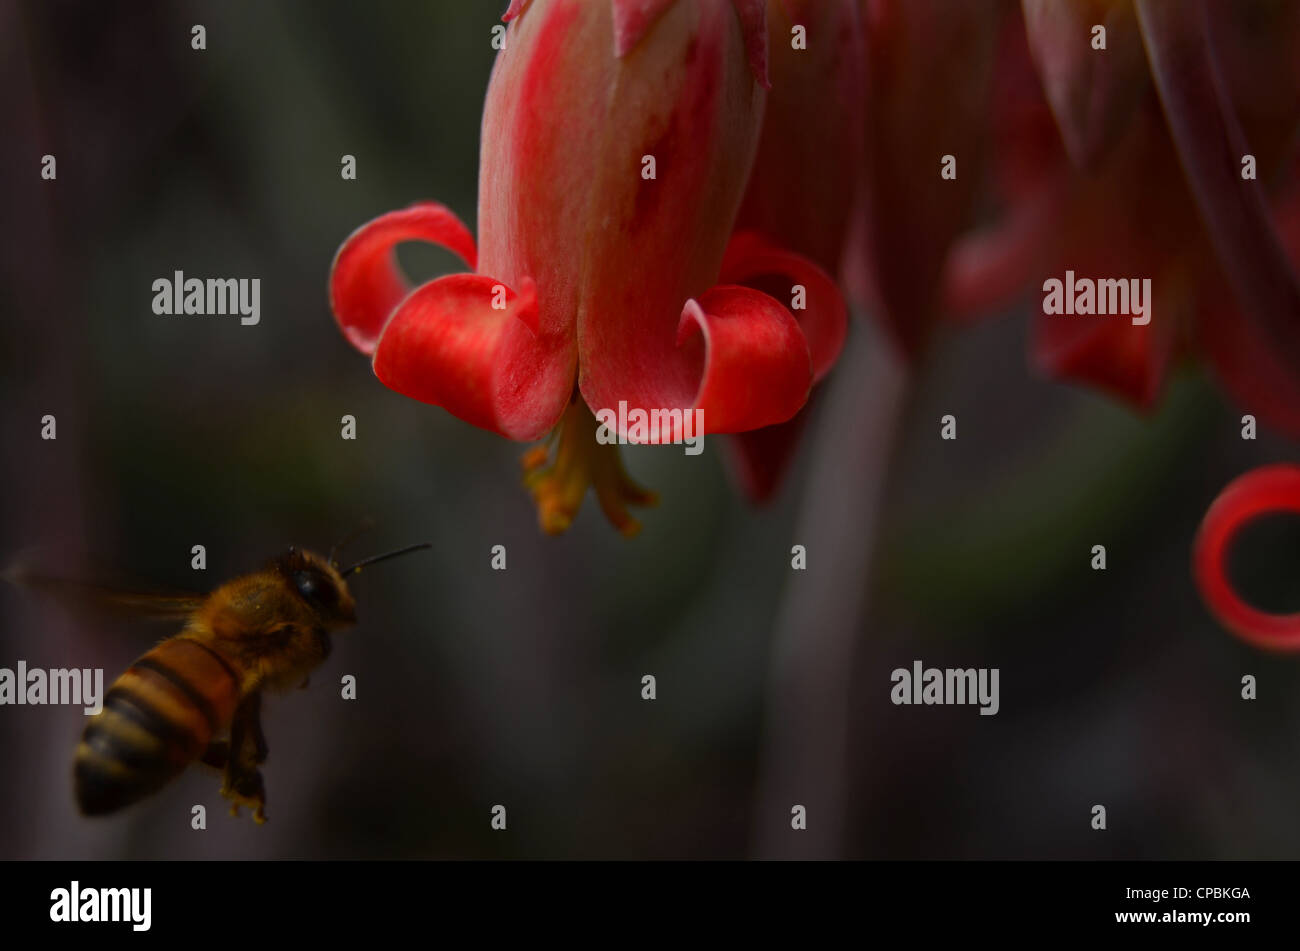 Bee approaching flower - Stock Image